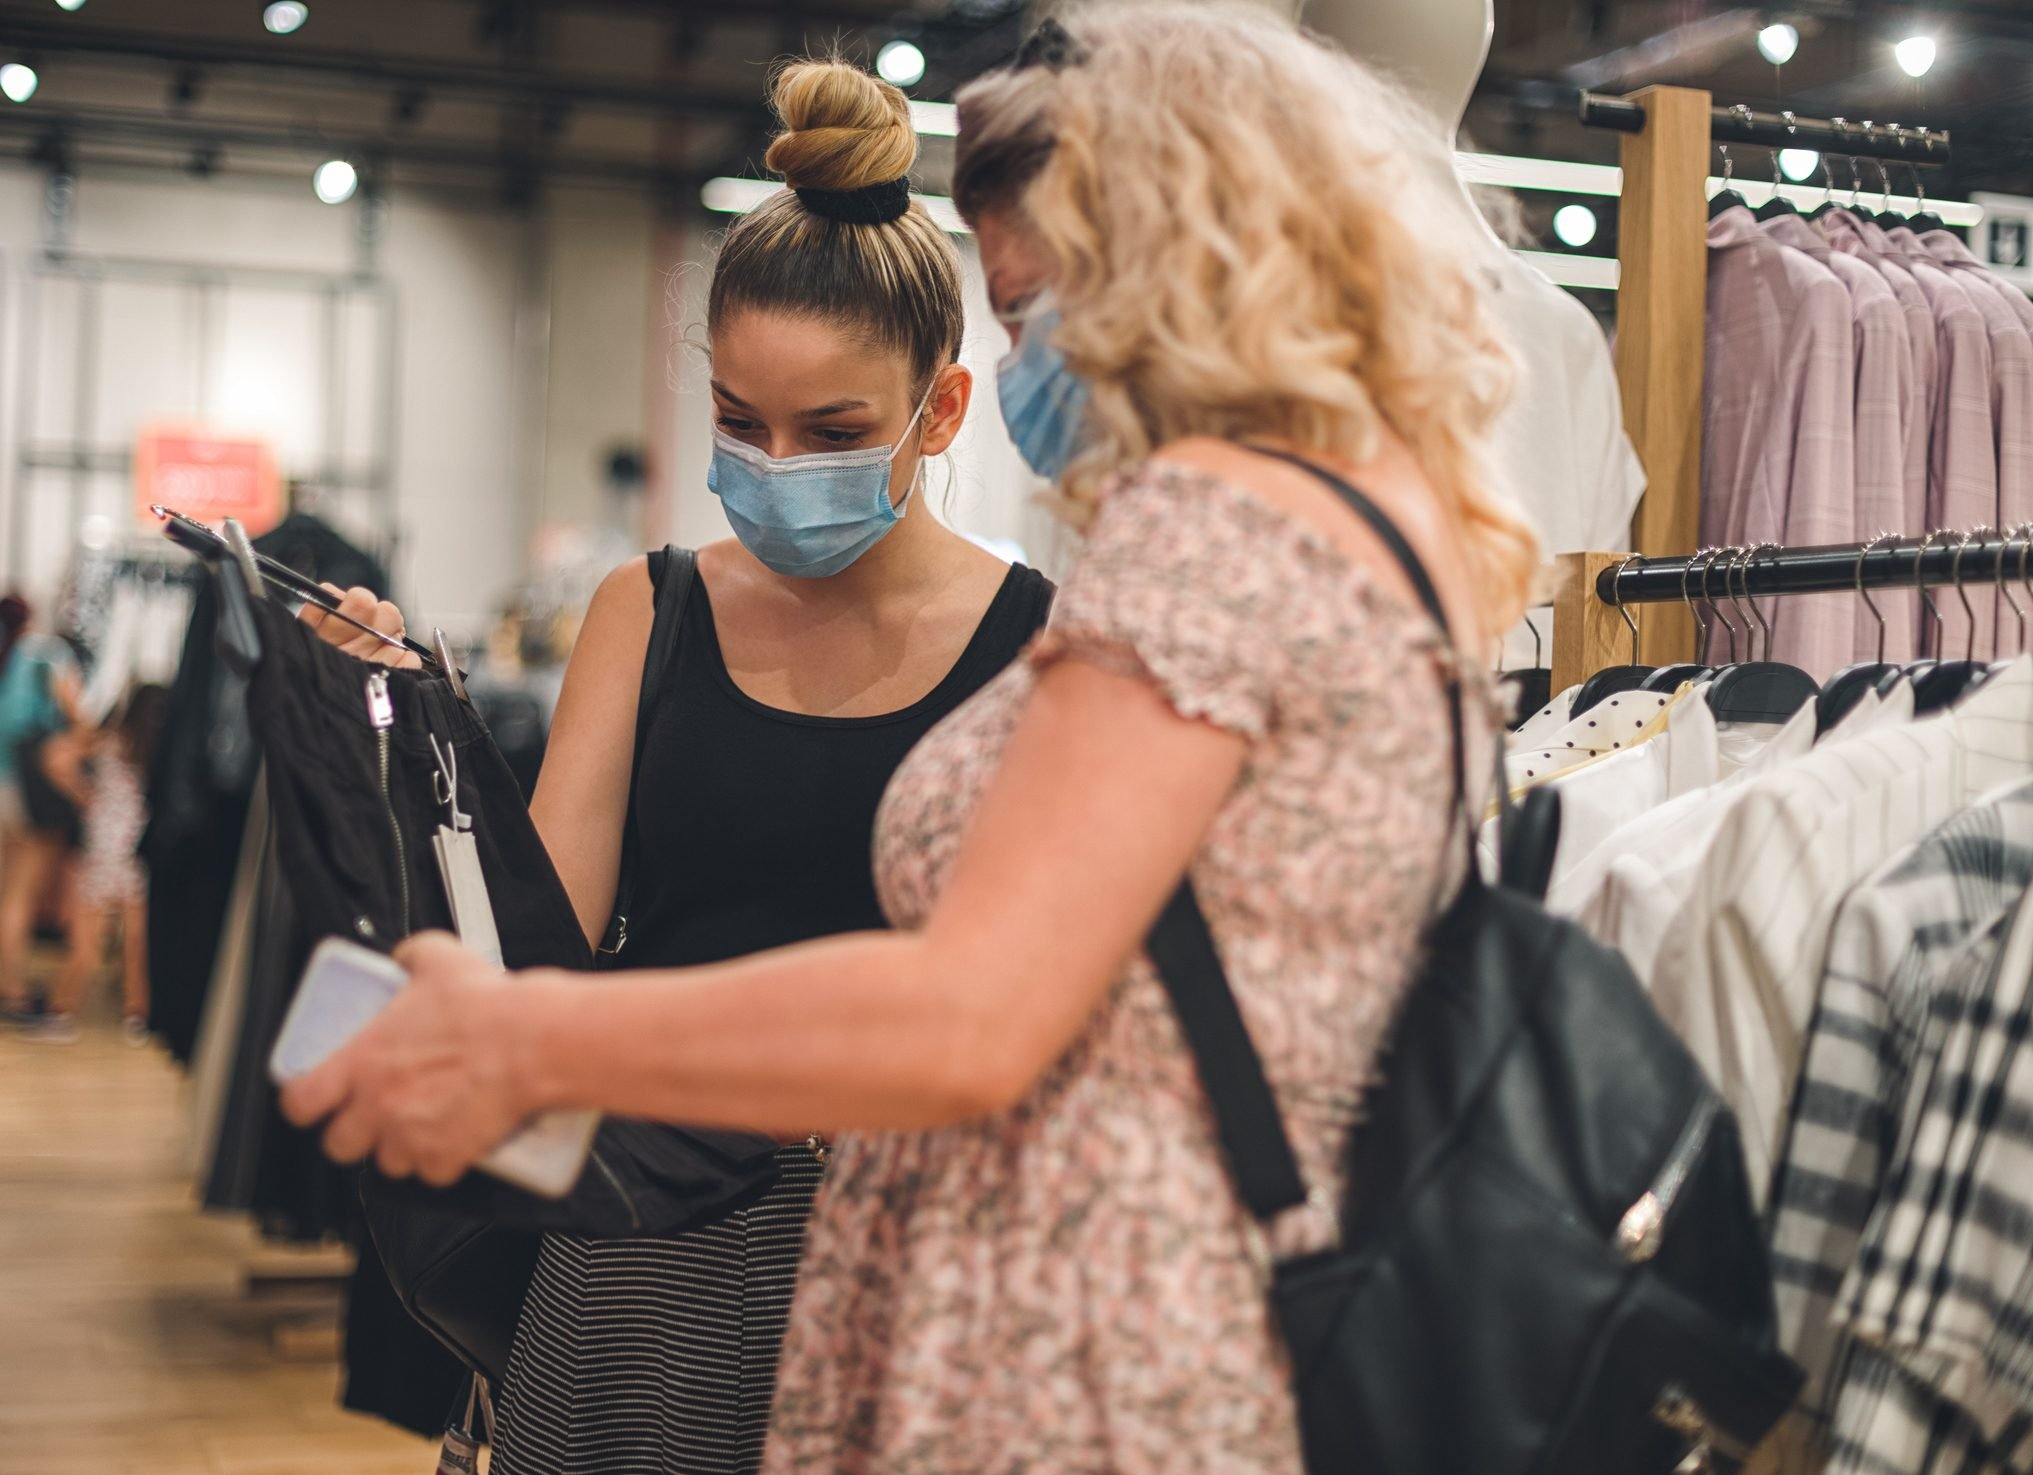 Family shopping at the mall during COVID-19 pandemic. They wears a protective mask to protect from coronavirus COVID-19.